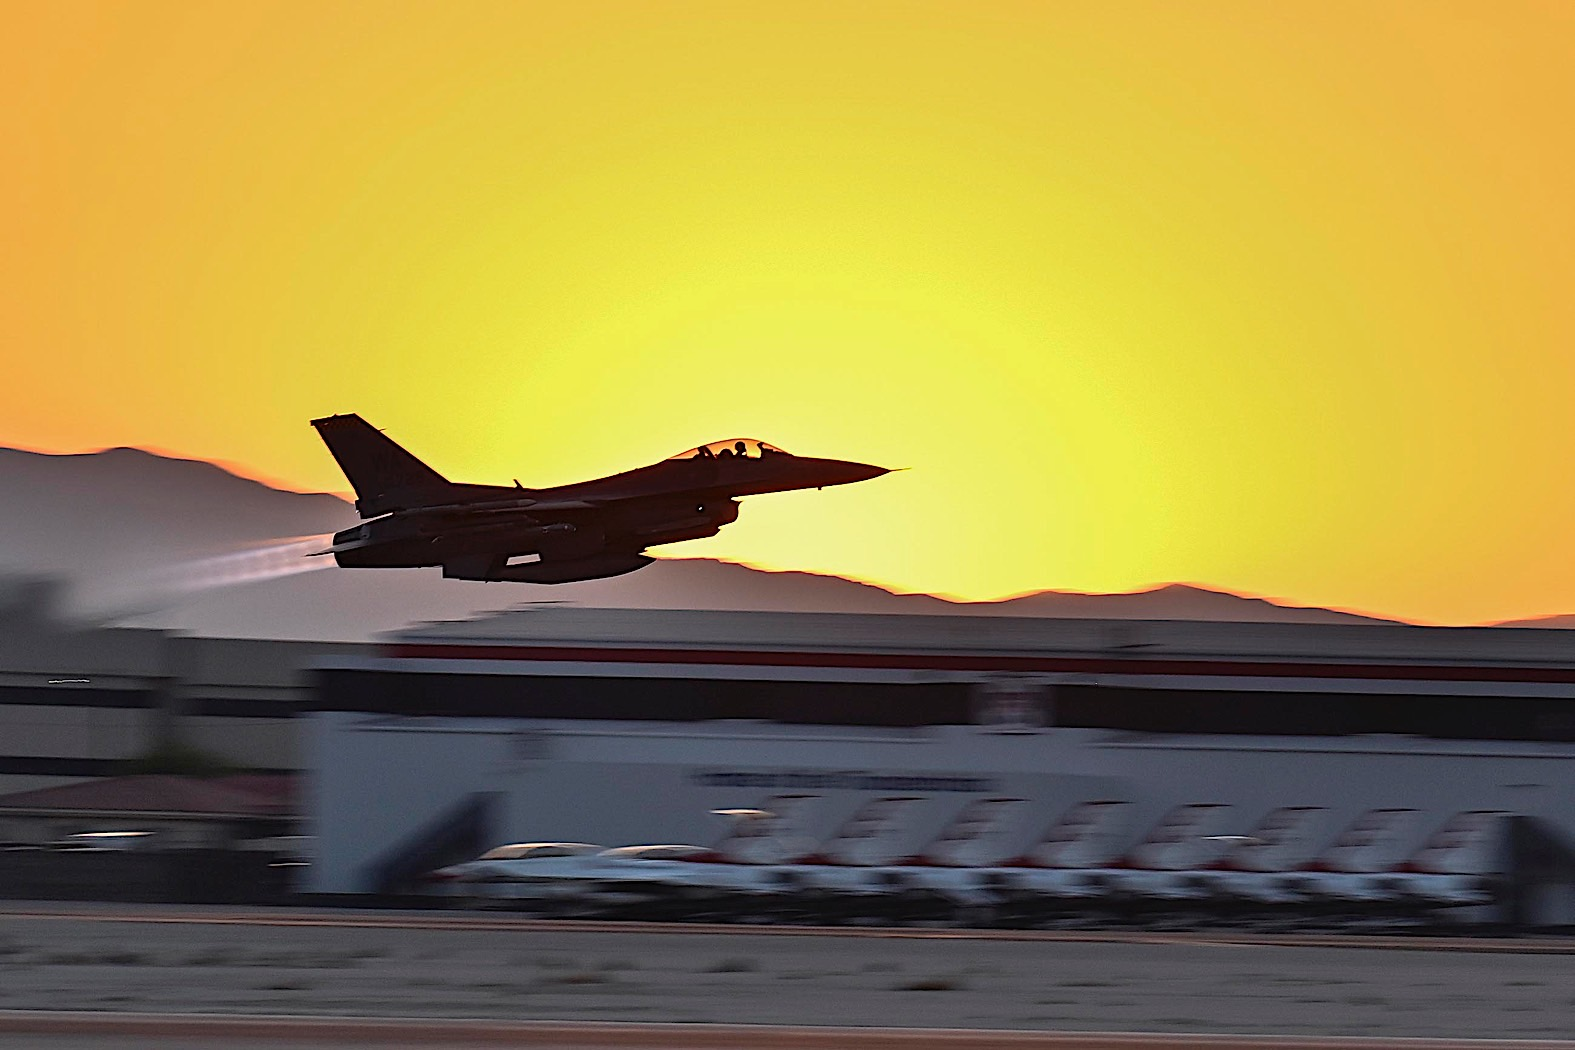 aggressor-squadron-f-16-flies-into-the-night,-ready-to-give-pilots-a-run-for-their-money